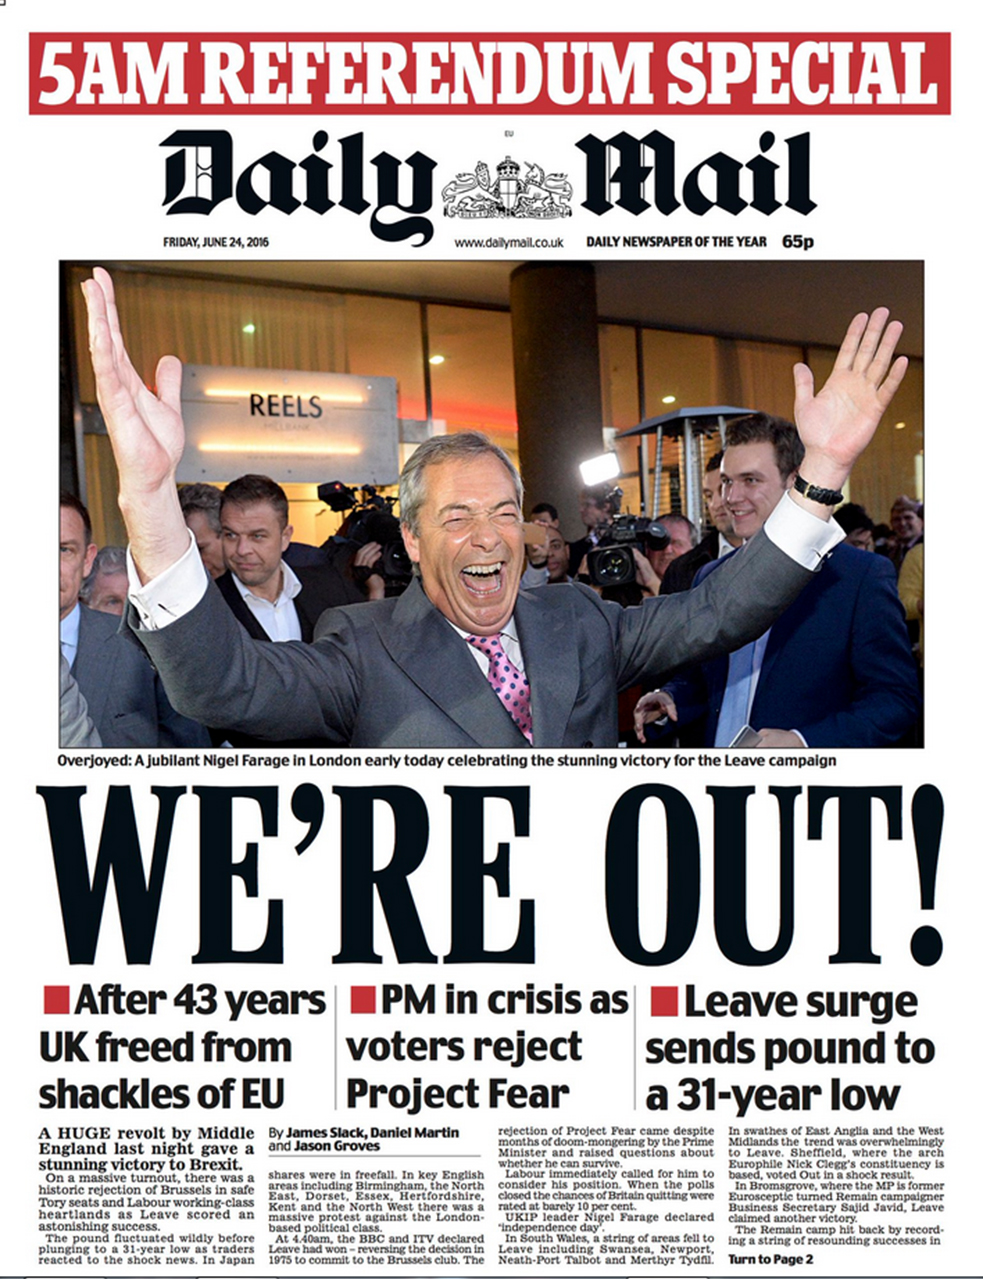 The referendum to leave the EU was won by a small margin.